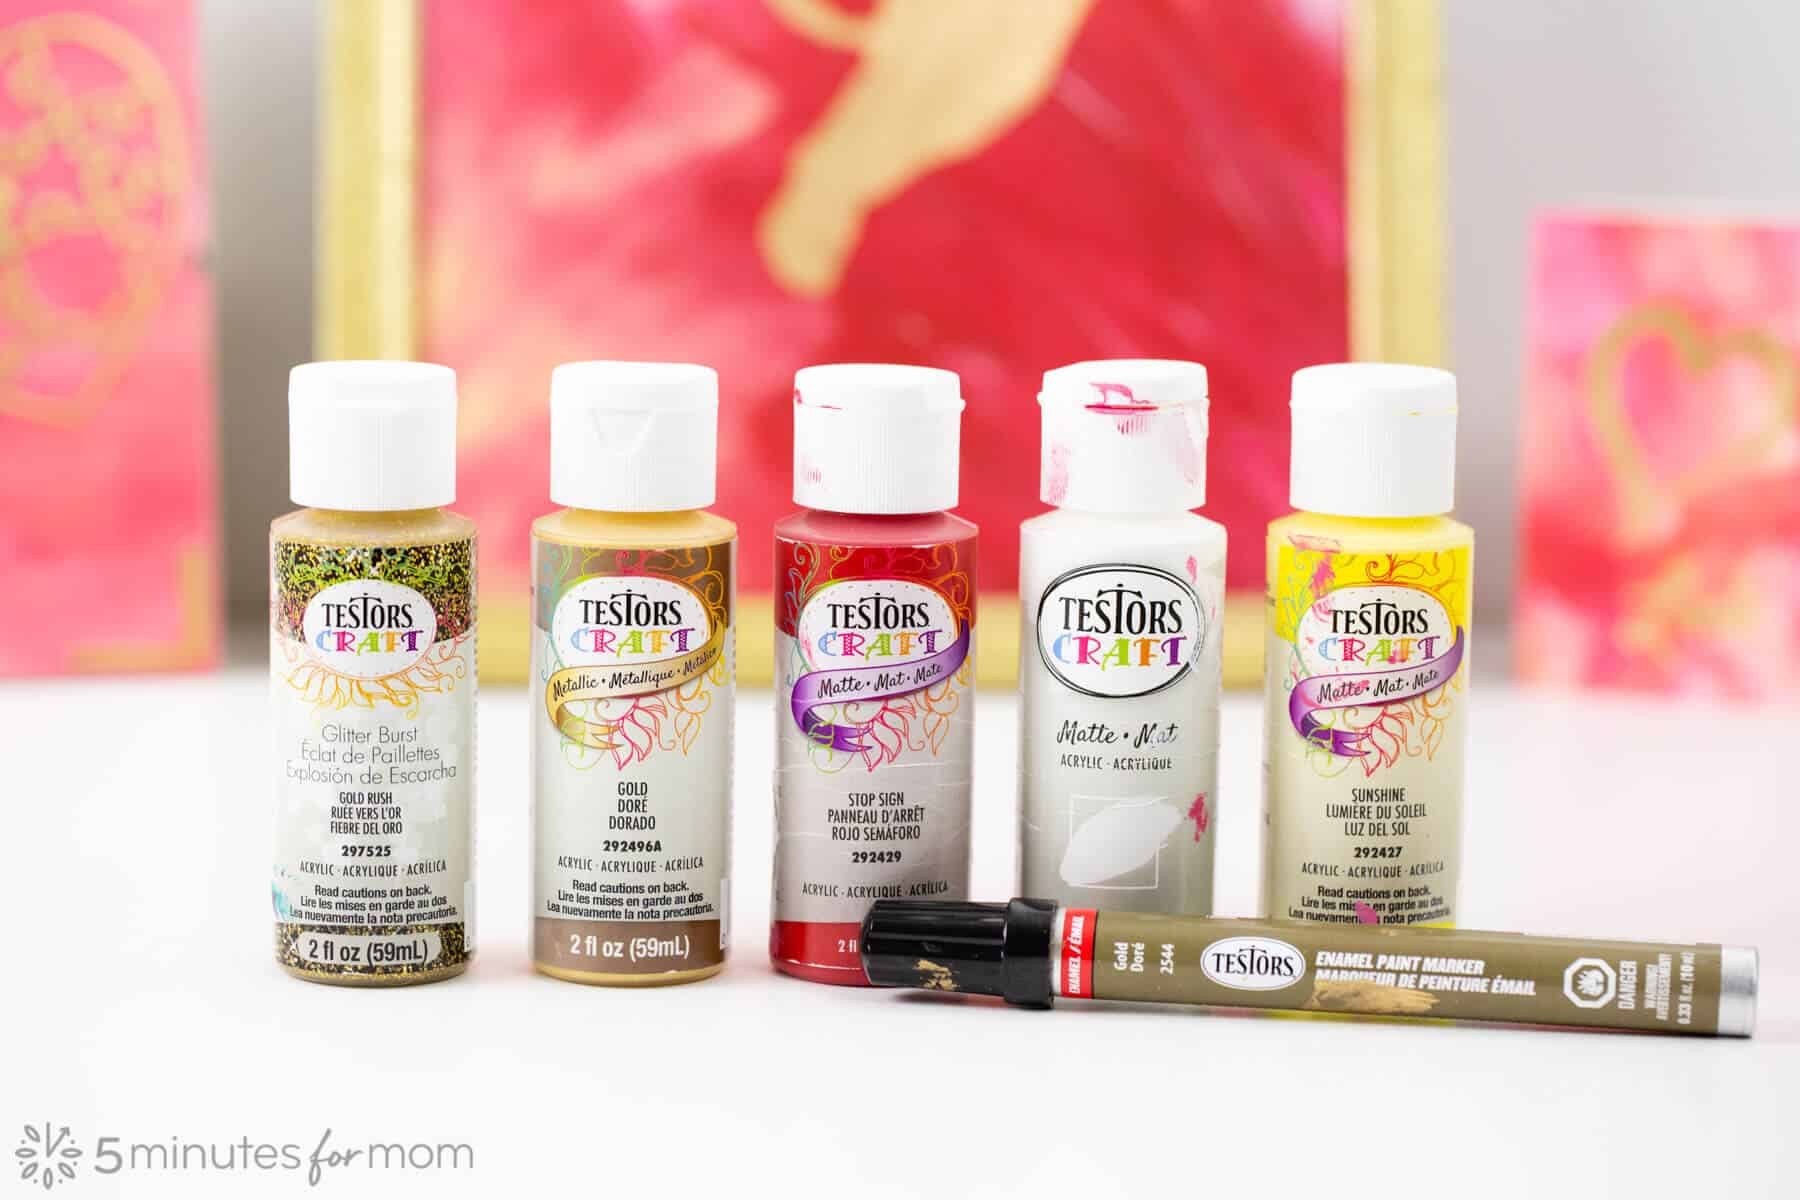 Testors Craft Acrylic Paints